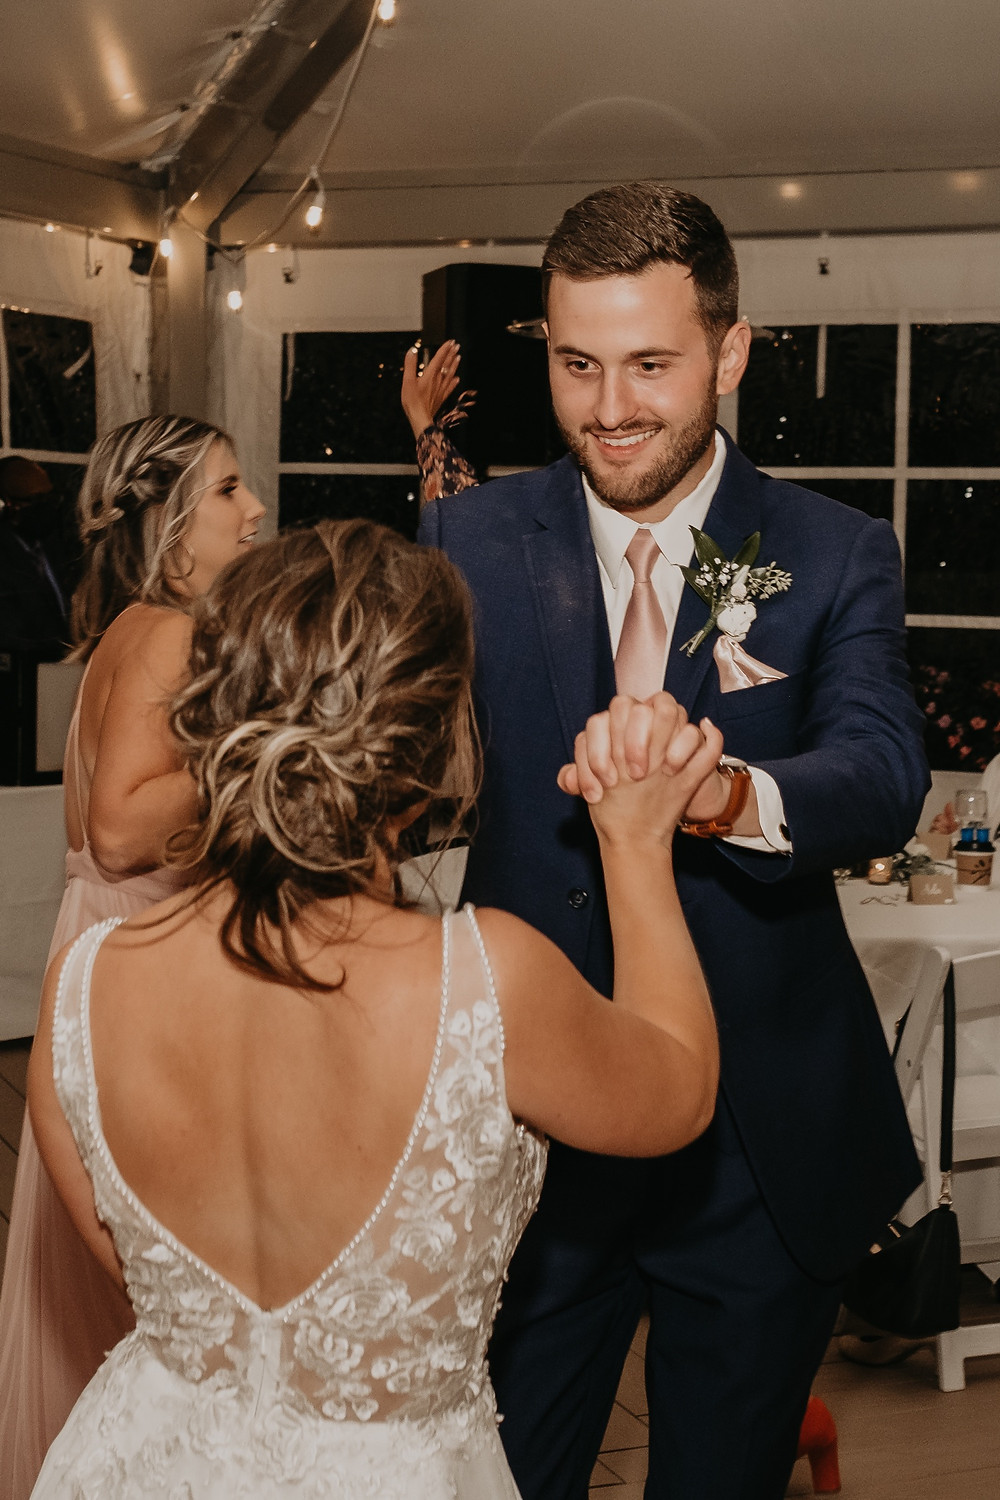 Family and guests dance at wedding with bride and groom. Photographed by Nicole Leanne Photography.